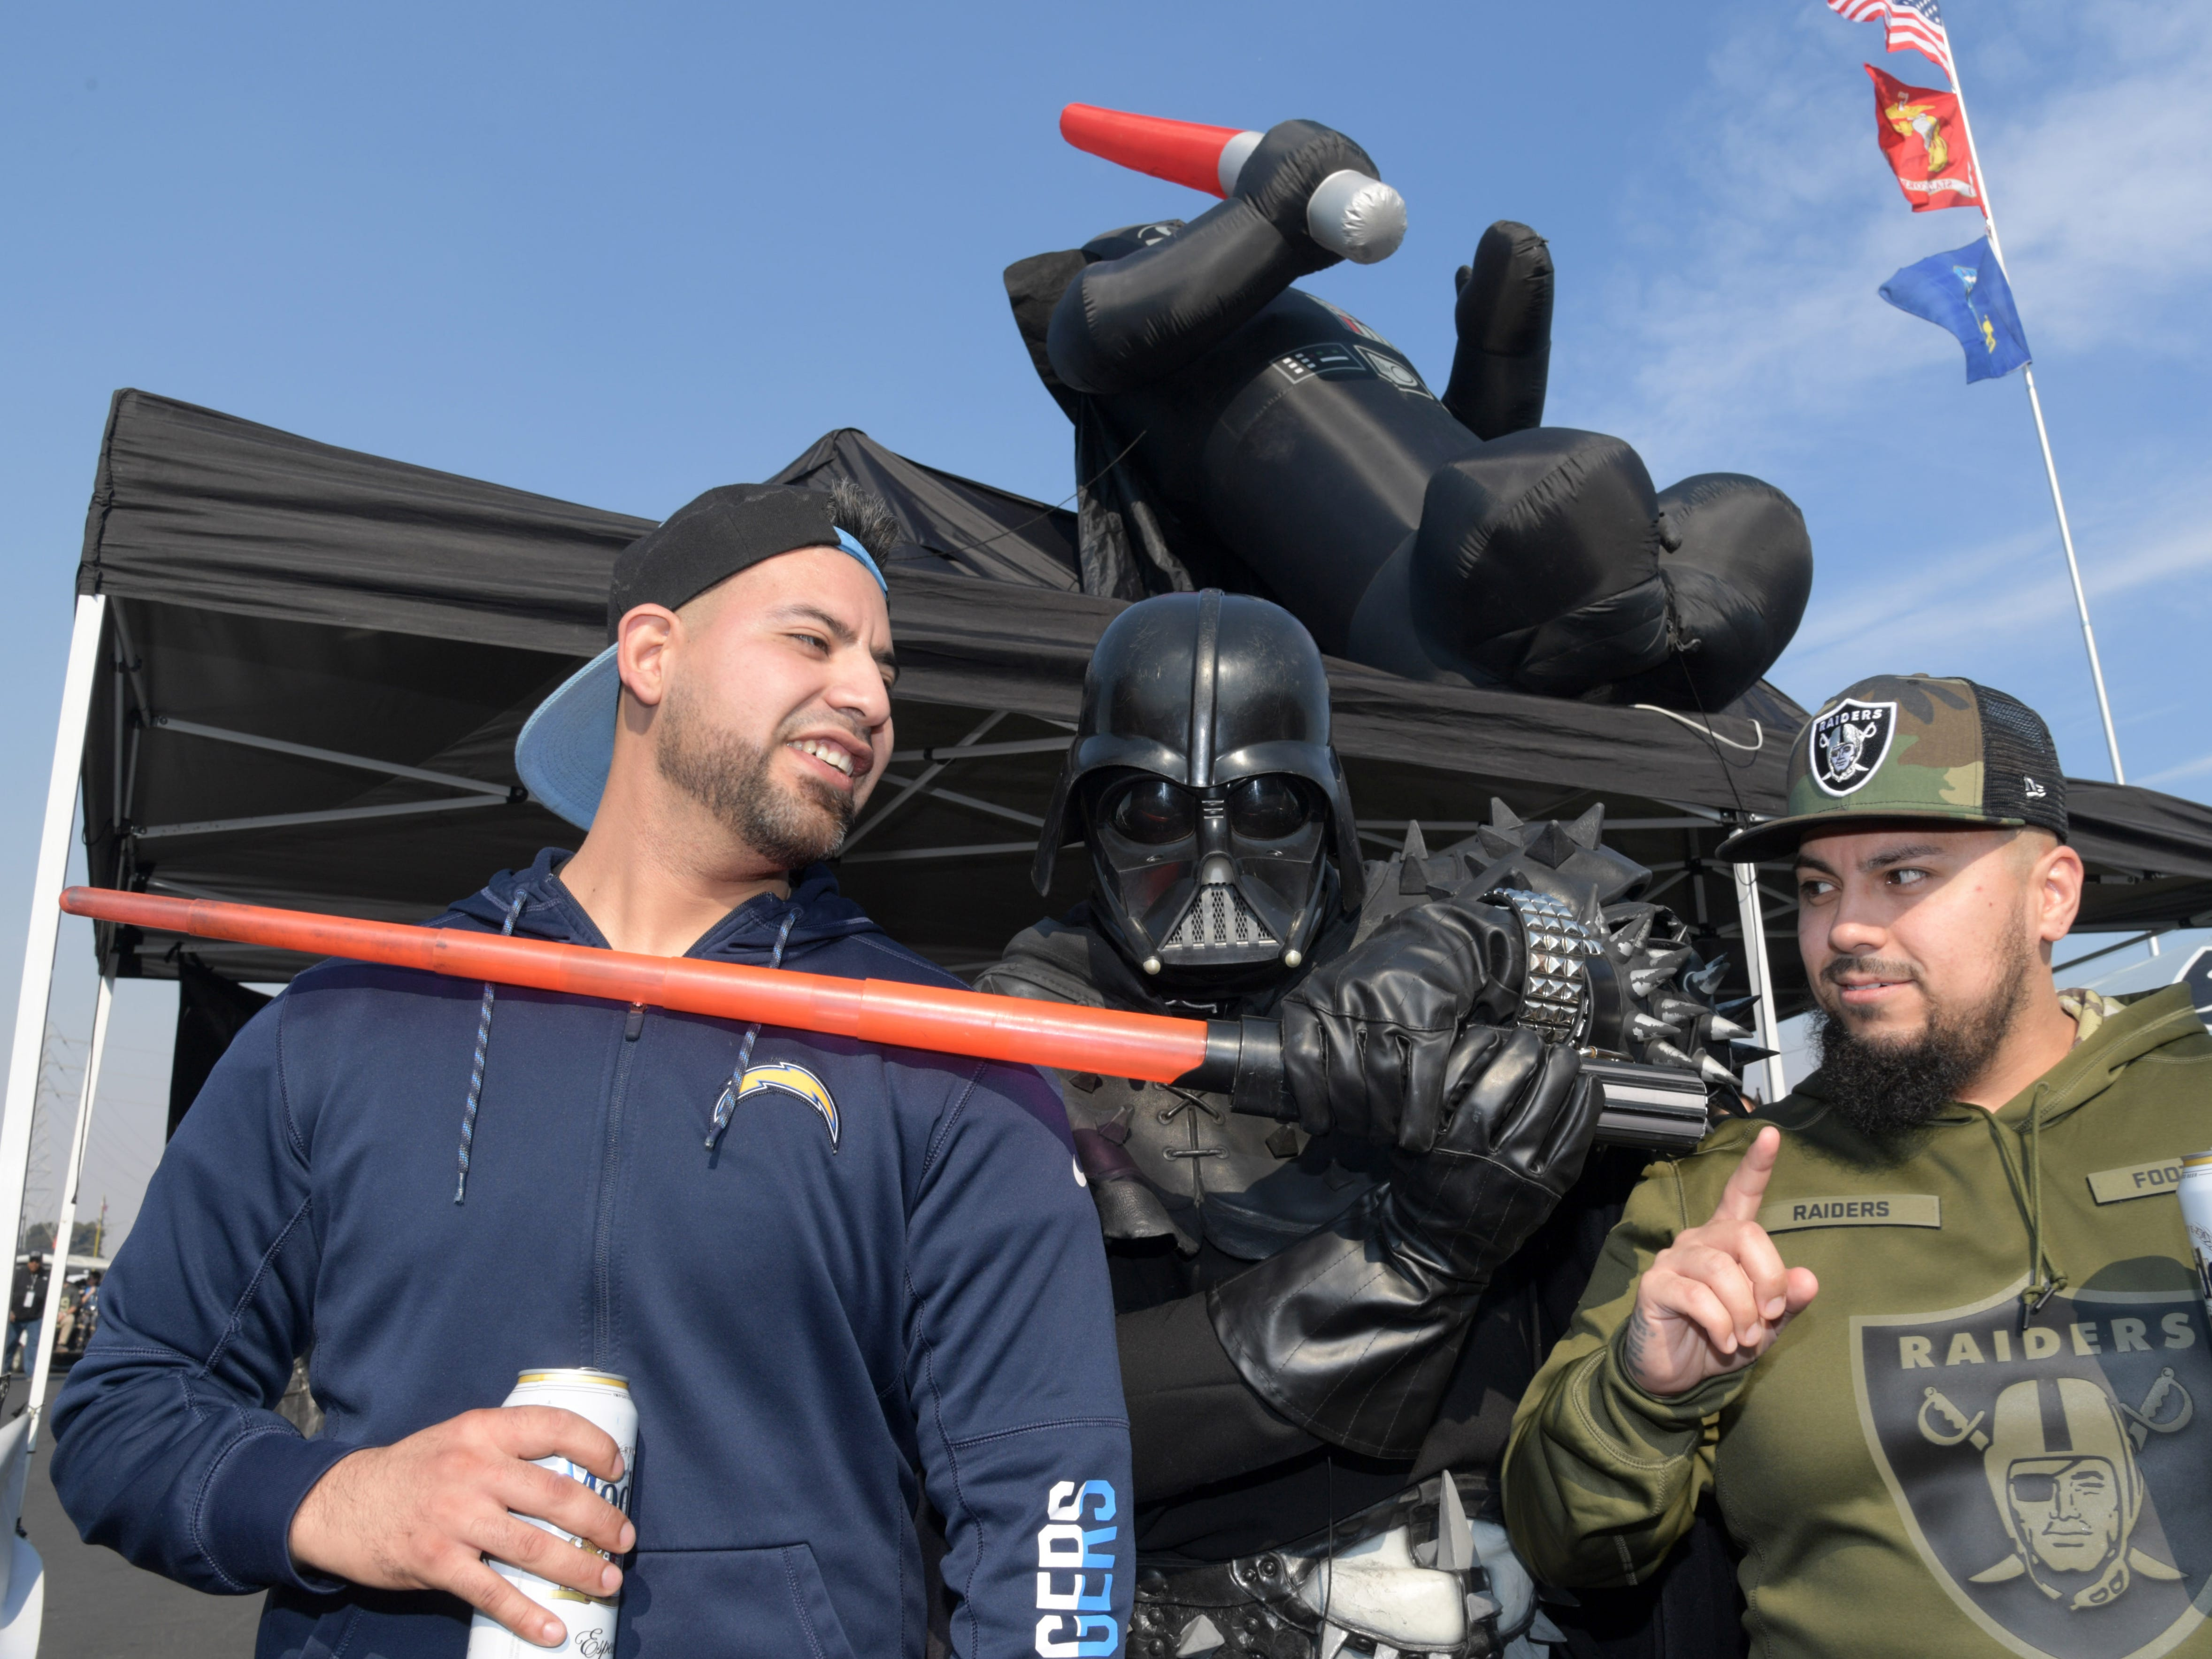 """Los Angeles Chargers fans pose with an Oakland Raiders fan dressed as """"Star Wars"""" character Darth Vader at Oakland Coliseum."""